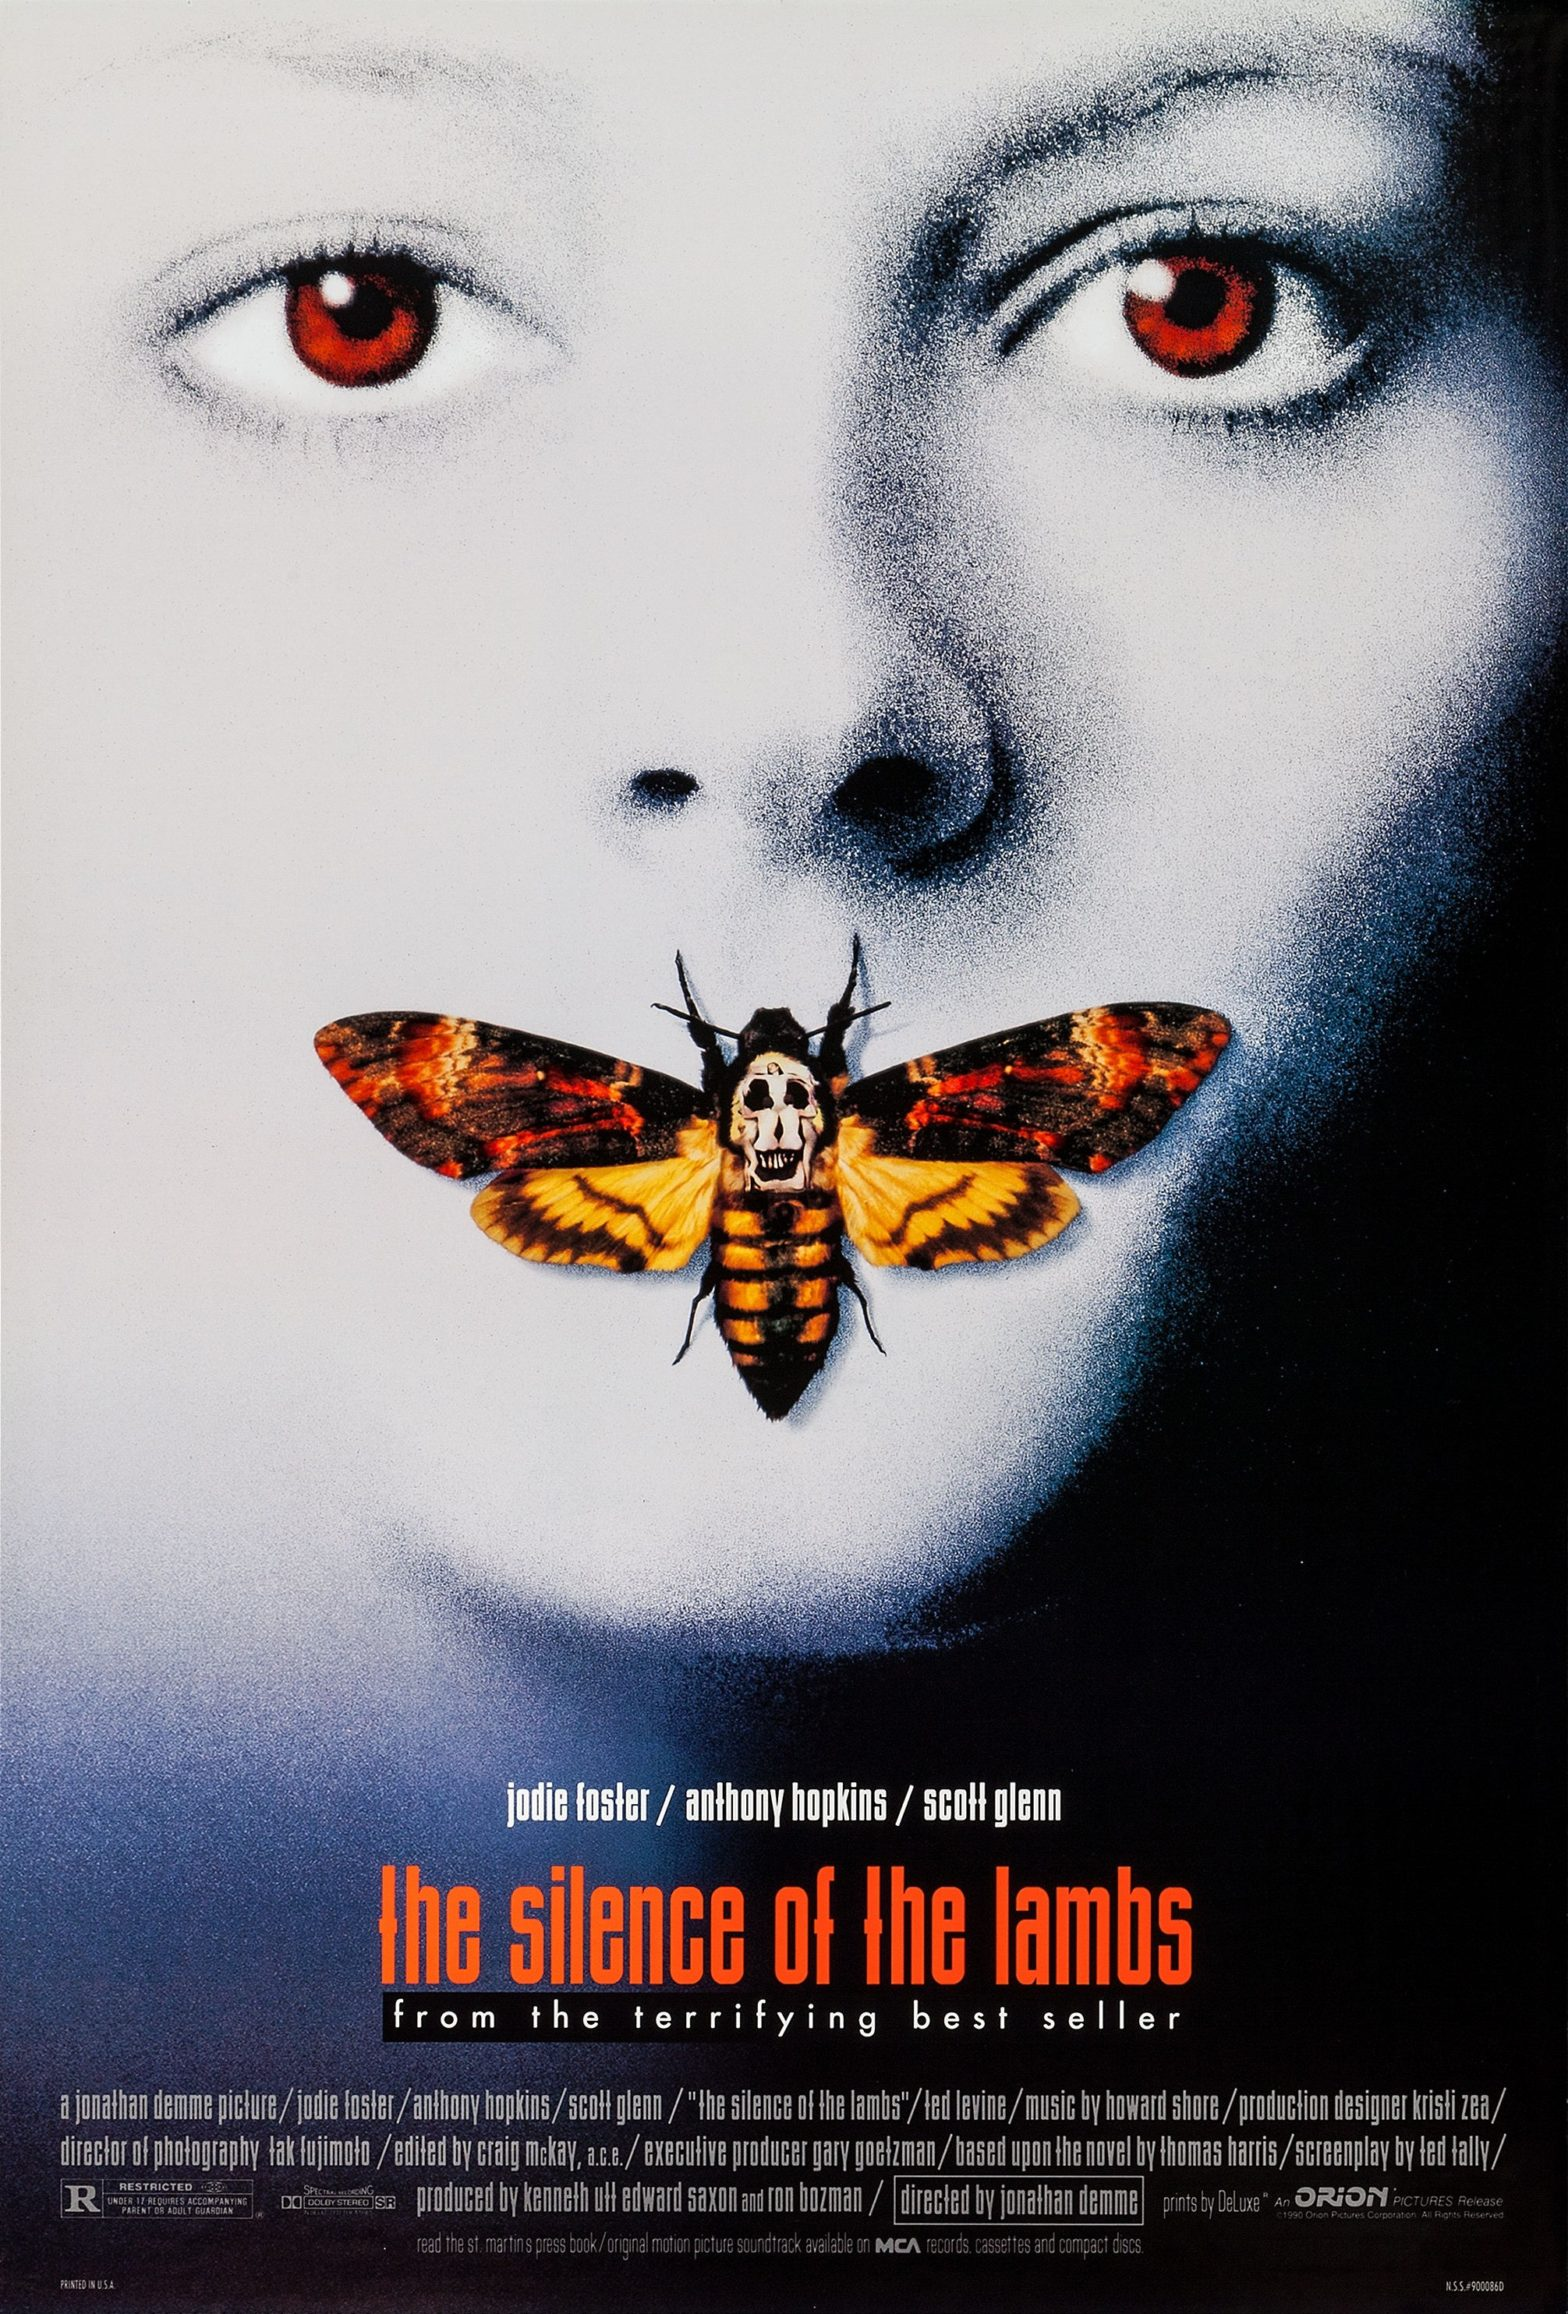 The Silence of the Lambs (1991) movie poster